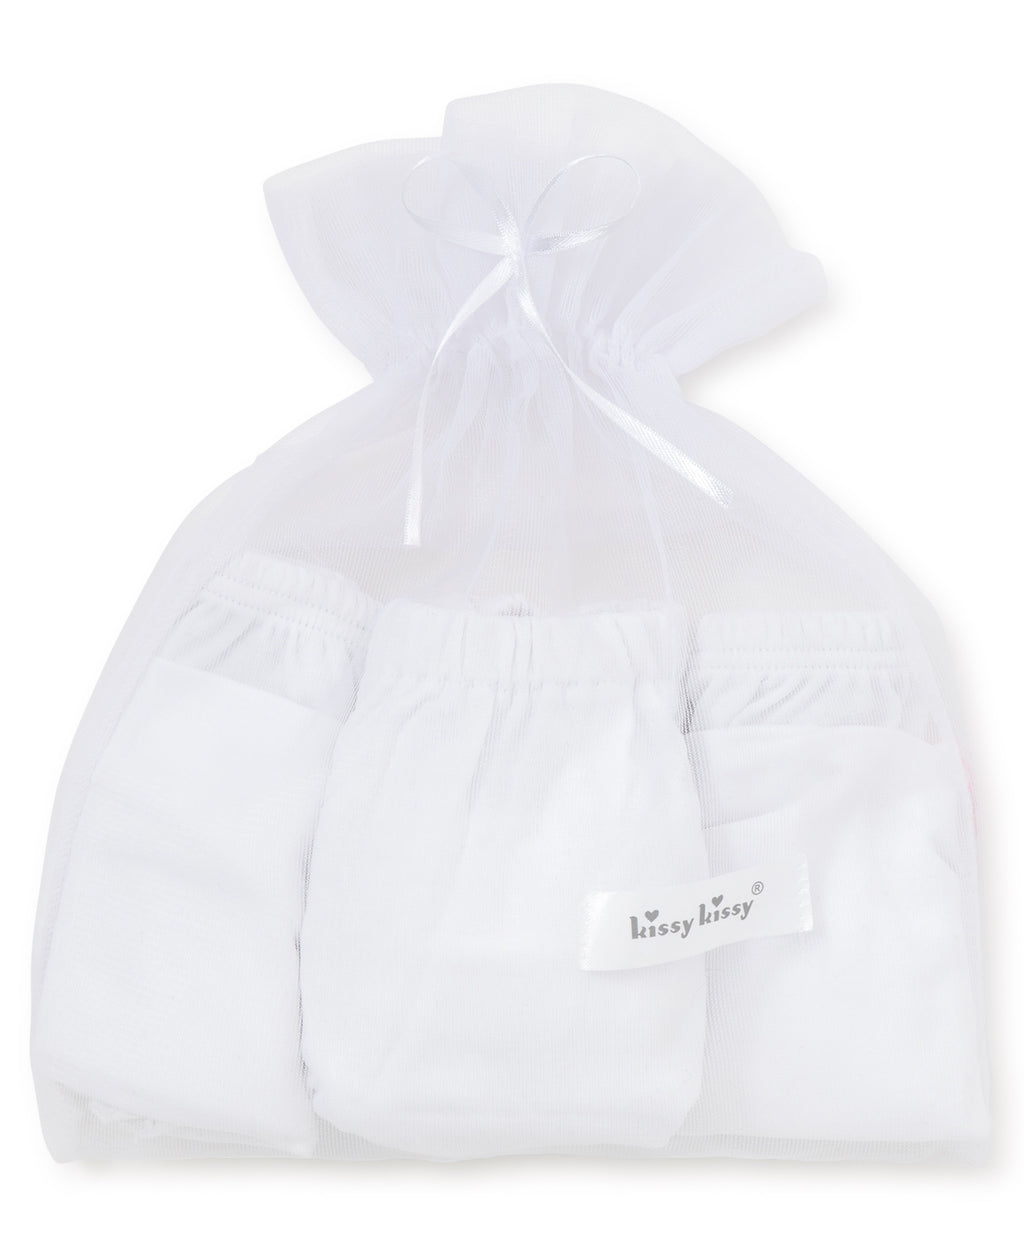 White Kissy Basics Diaper Cover Set